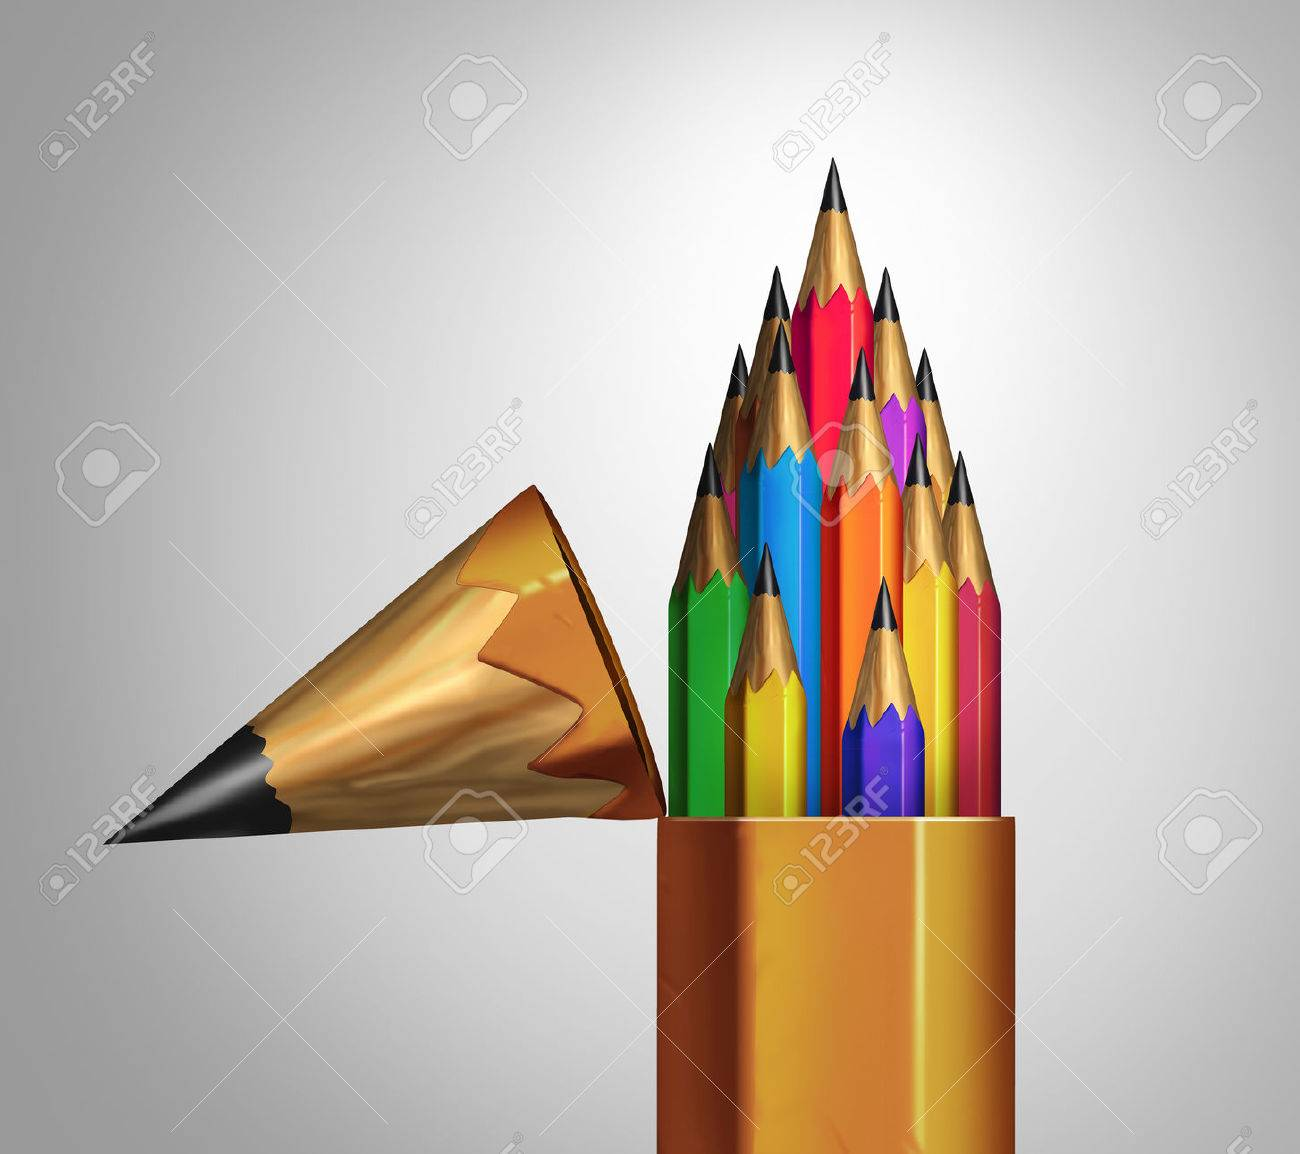 Community strength and diverse group teamwork concept as an open giant pencil with a team of multicolored smaller pencils inside as a business or education metaphor for unity and corporate diversity success. Stock Photo - 54085830